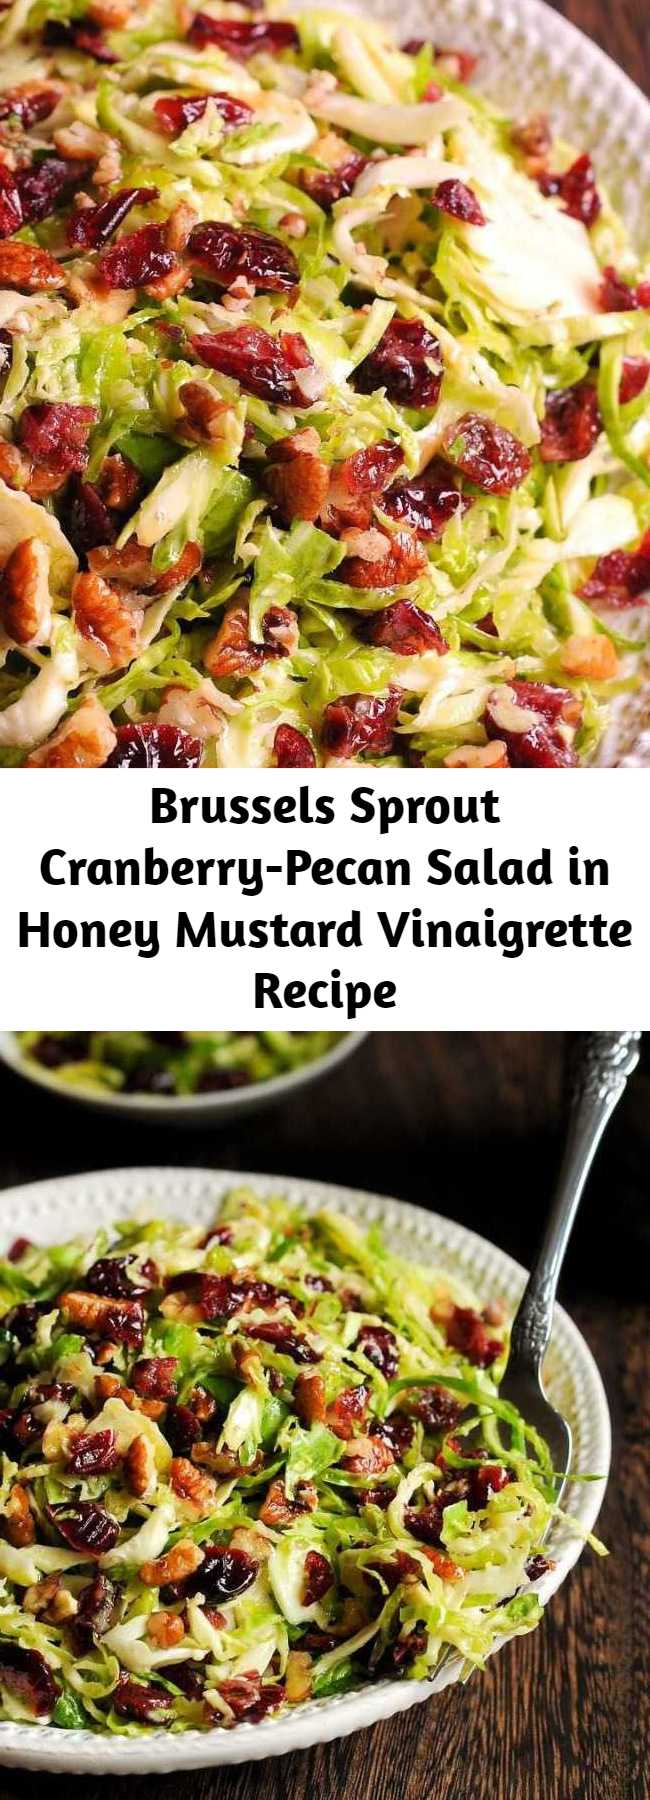 Brussels Sprout Cranberry-Pecan Salad in Honey Mustard Vinaigrette Recipe - This delicious Honey Mustard Brussels Sprout Salad with Cranberries and Pecans is all about crisp, shredded Brussels sprouts tossed with slightly sweet honey mustard vinaigrette, dried cranberries and chopped pecans. Perfect for potlucks or holiday meals, but you may find it to be a perfect complement to your everyday dinner as well. And it's gluten-free! #salad #fall #thanksgiving #holiday #christmas #healthy